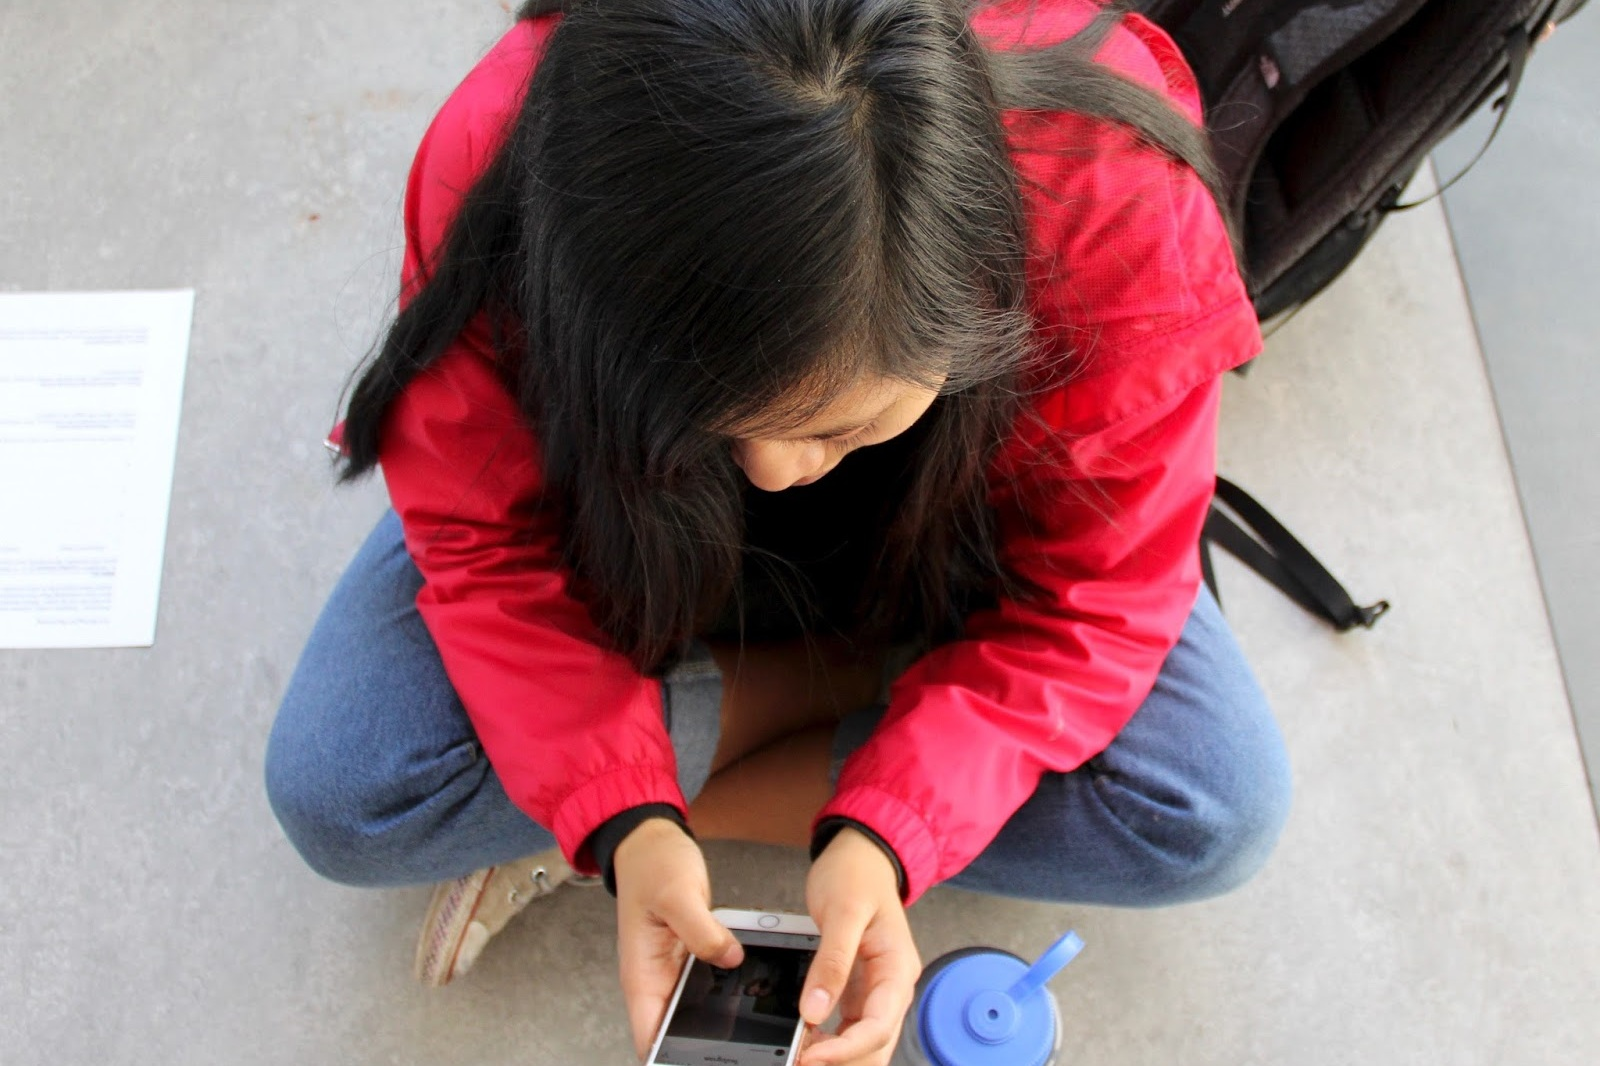 After returning from filling my water bottle up at the water fountain I realized one thing: a once engaging conversation about classes, stressful extracurricular activities, and exciting weekend plans has turned to people tapping and scrolling on their phones.